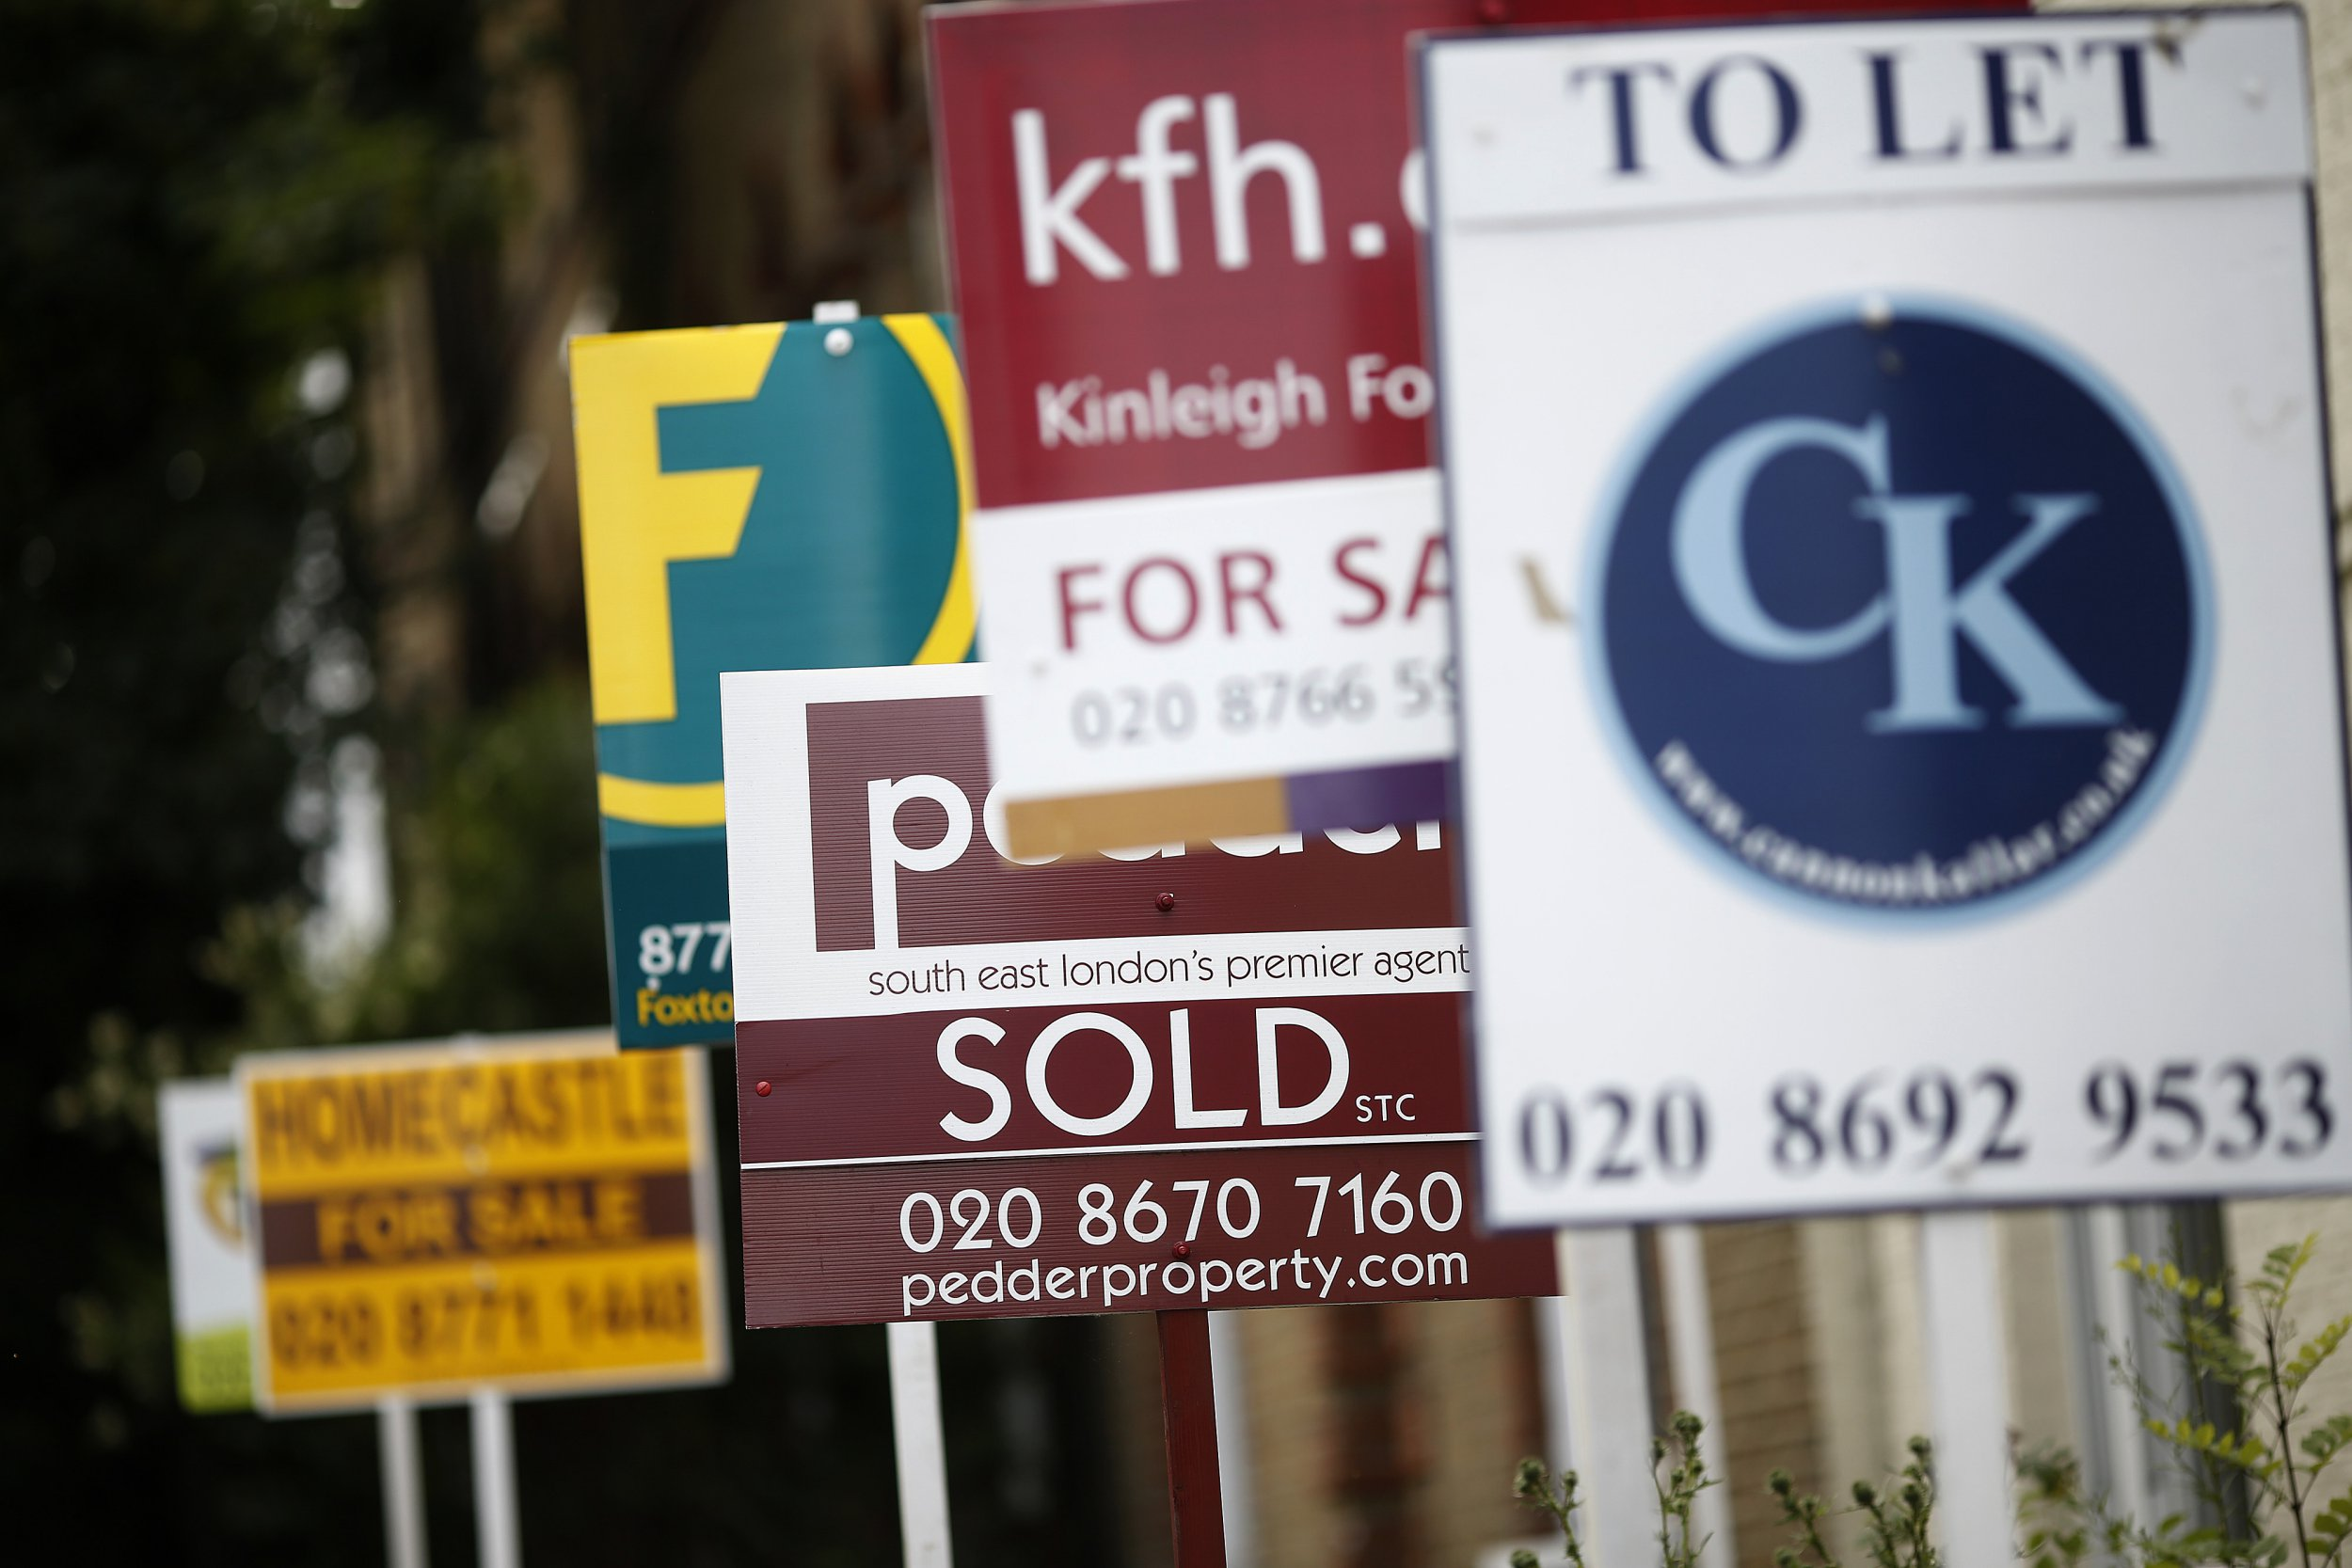 House prices are on the brink of massive collapse